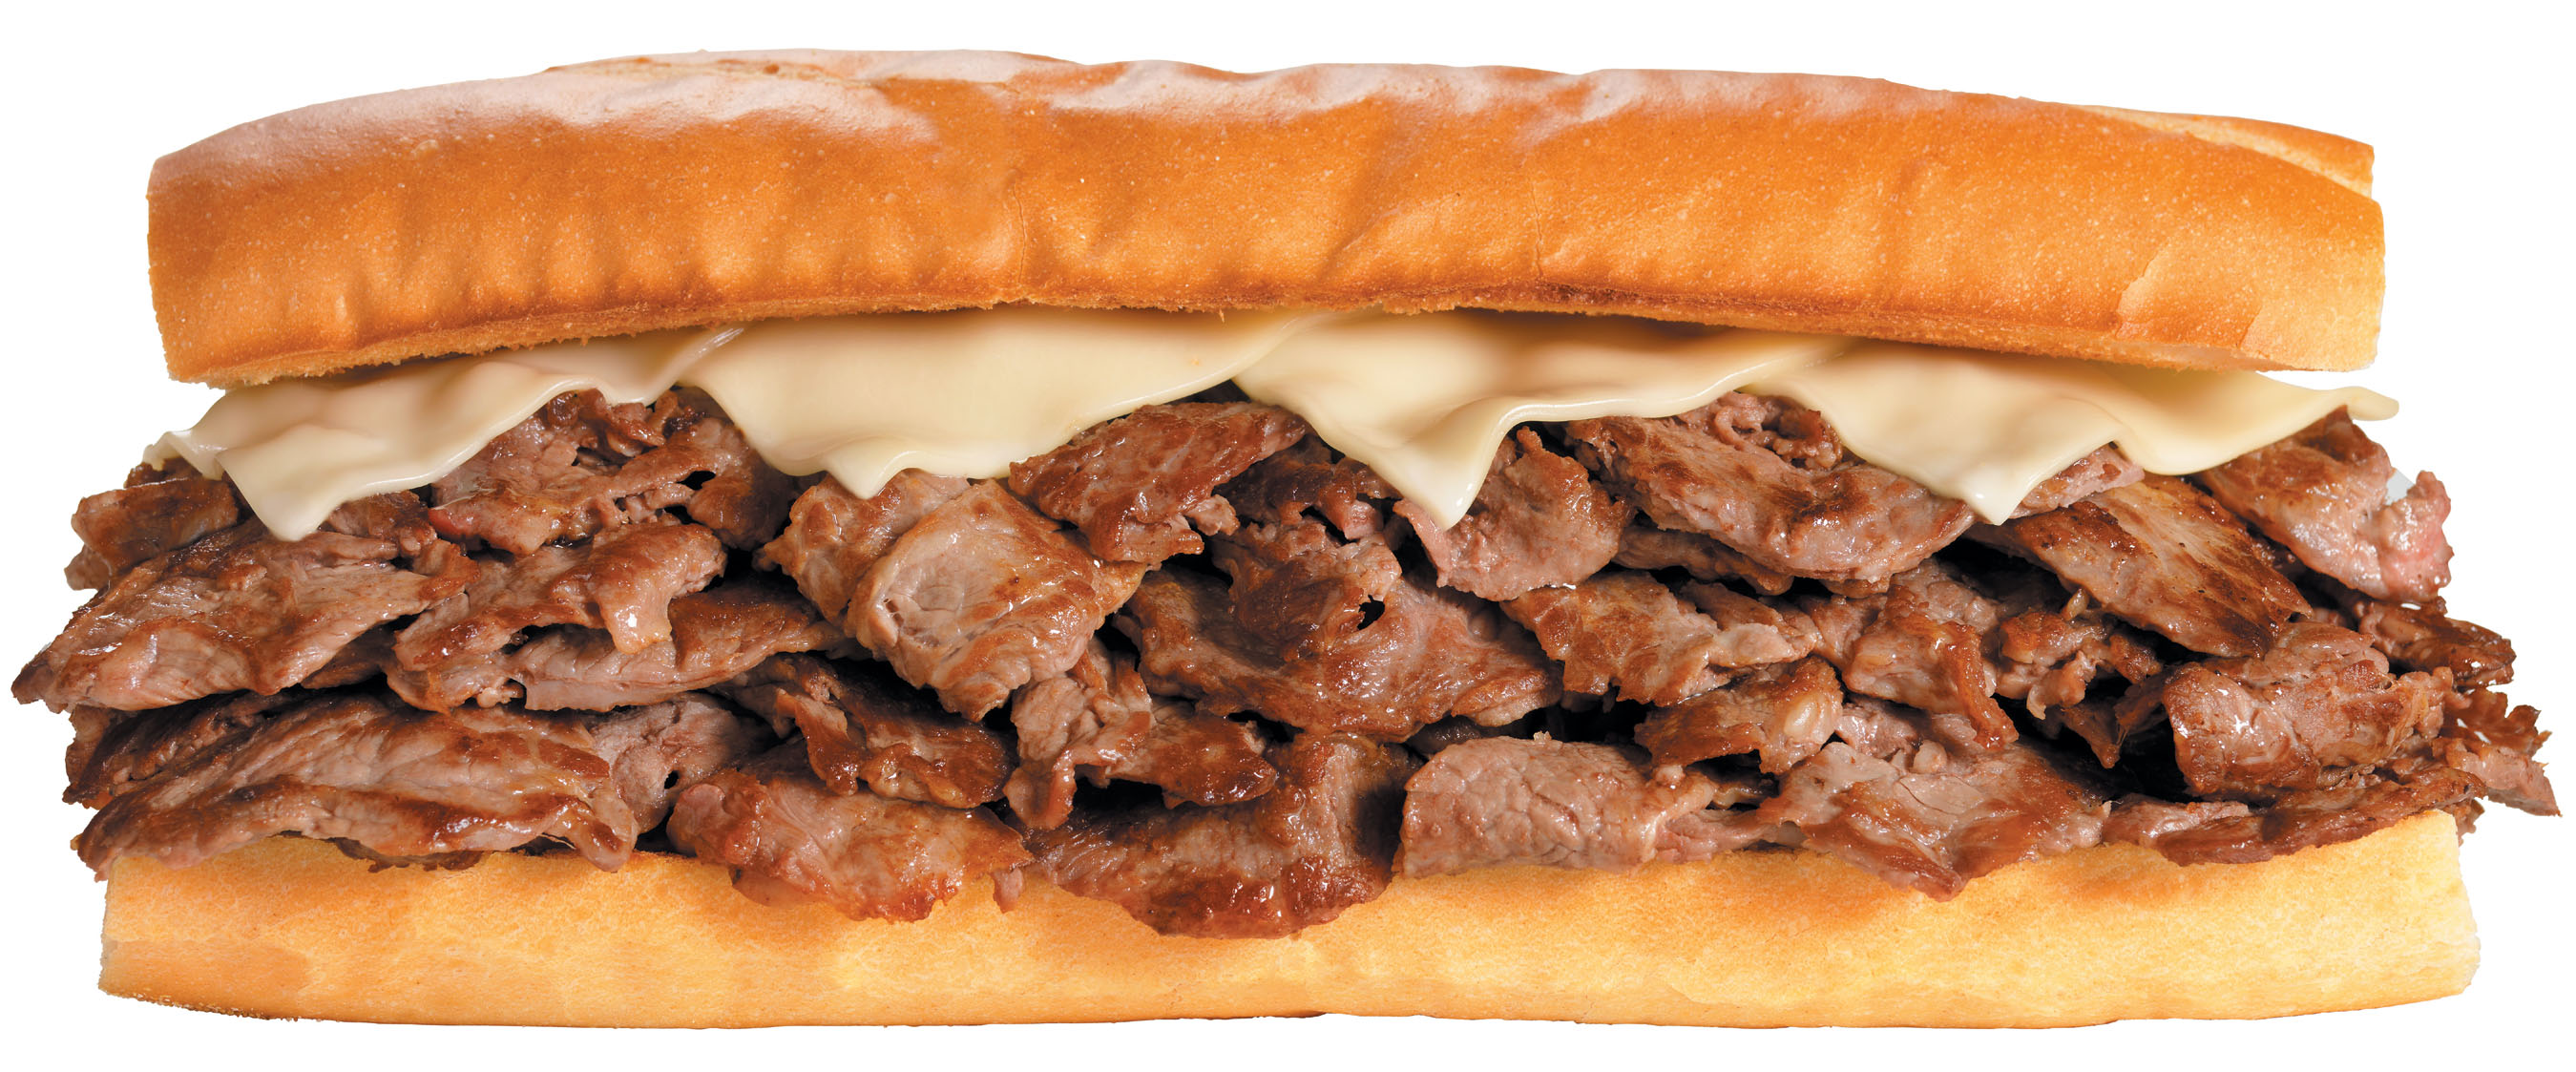 ... Grilled Sandwiches Introduces a One Pound Steak & Cheese Sandwich